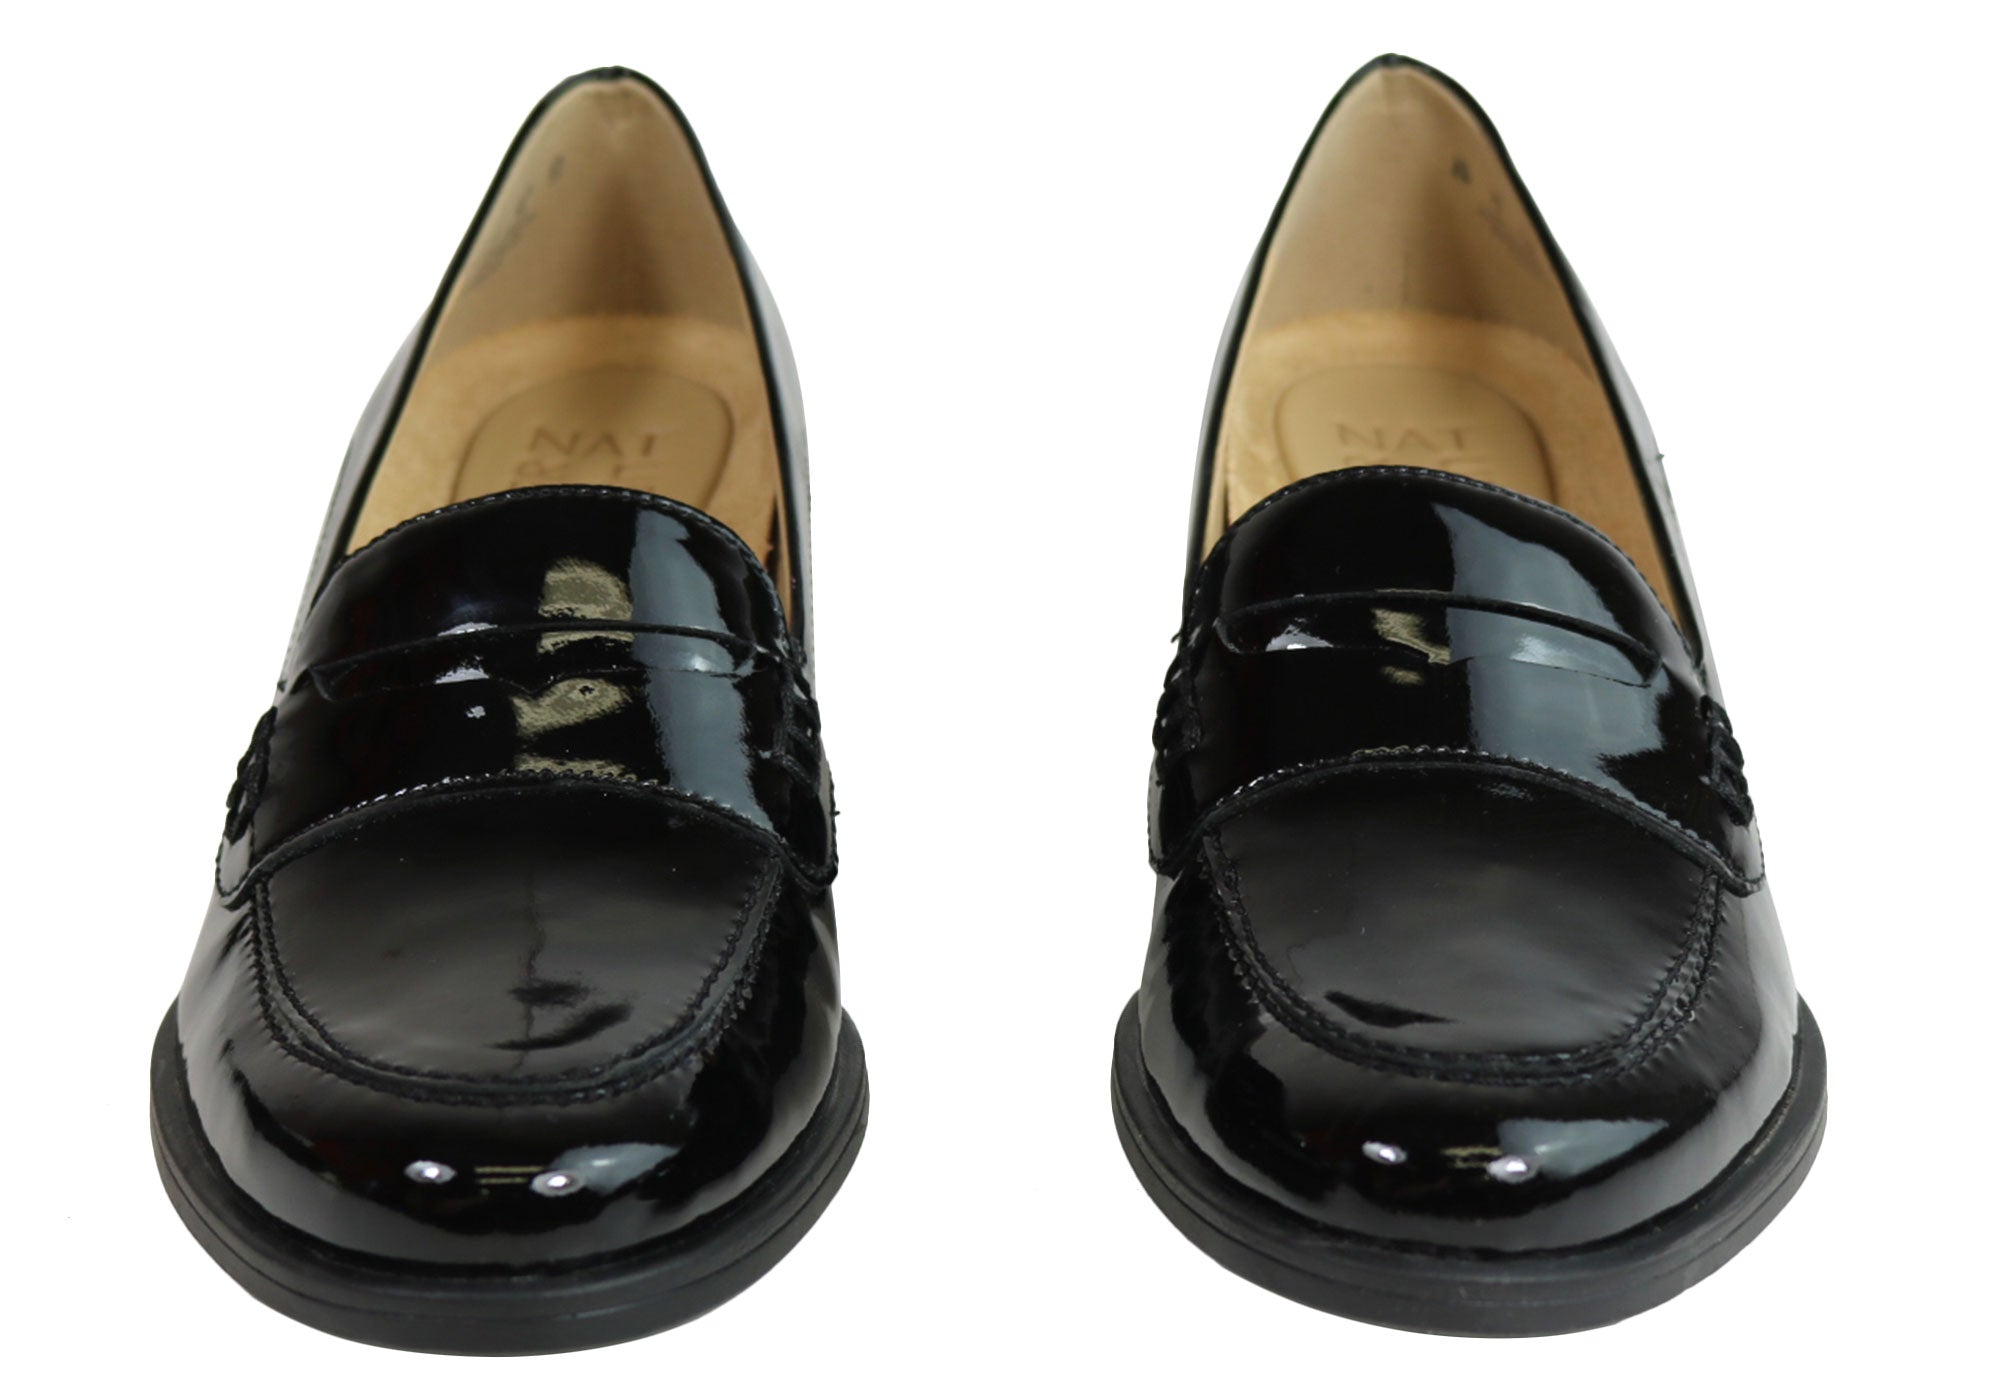 a8d8b1c5529 Naturalizer Dinah Womens Mid Heel Patent Leather Loafer Comfort Pumps